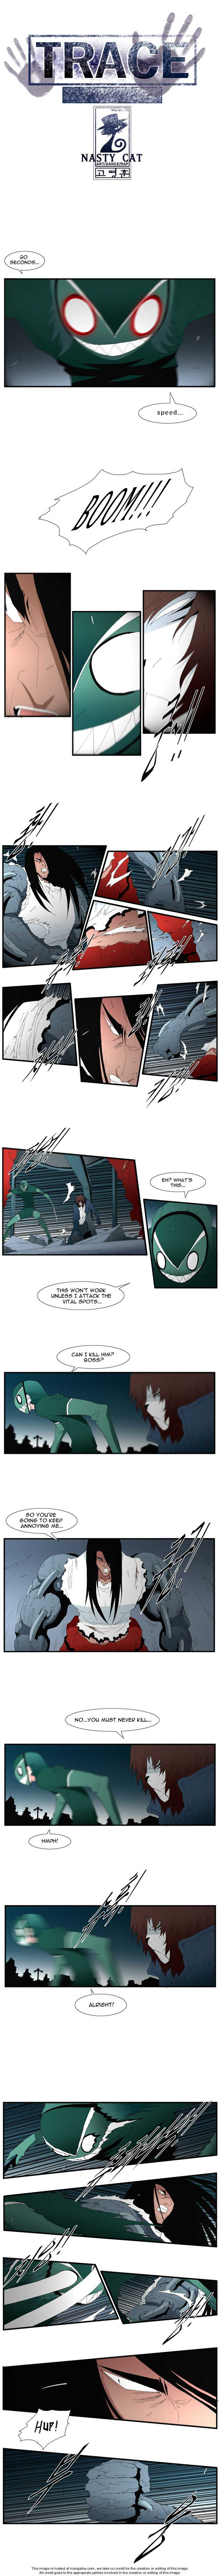 Trace 32 Page 1